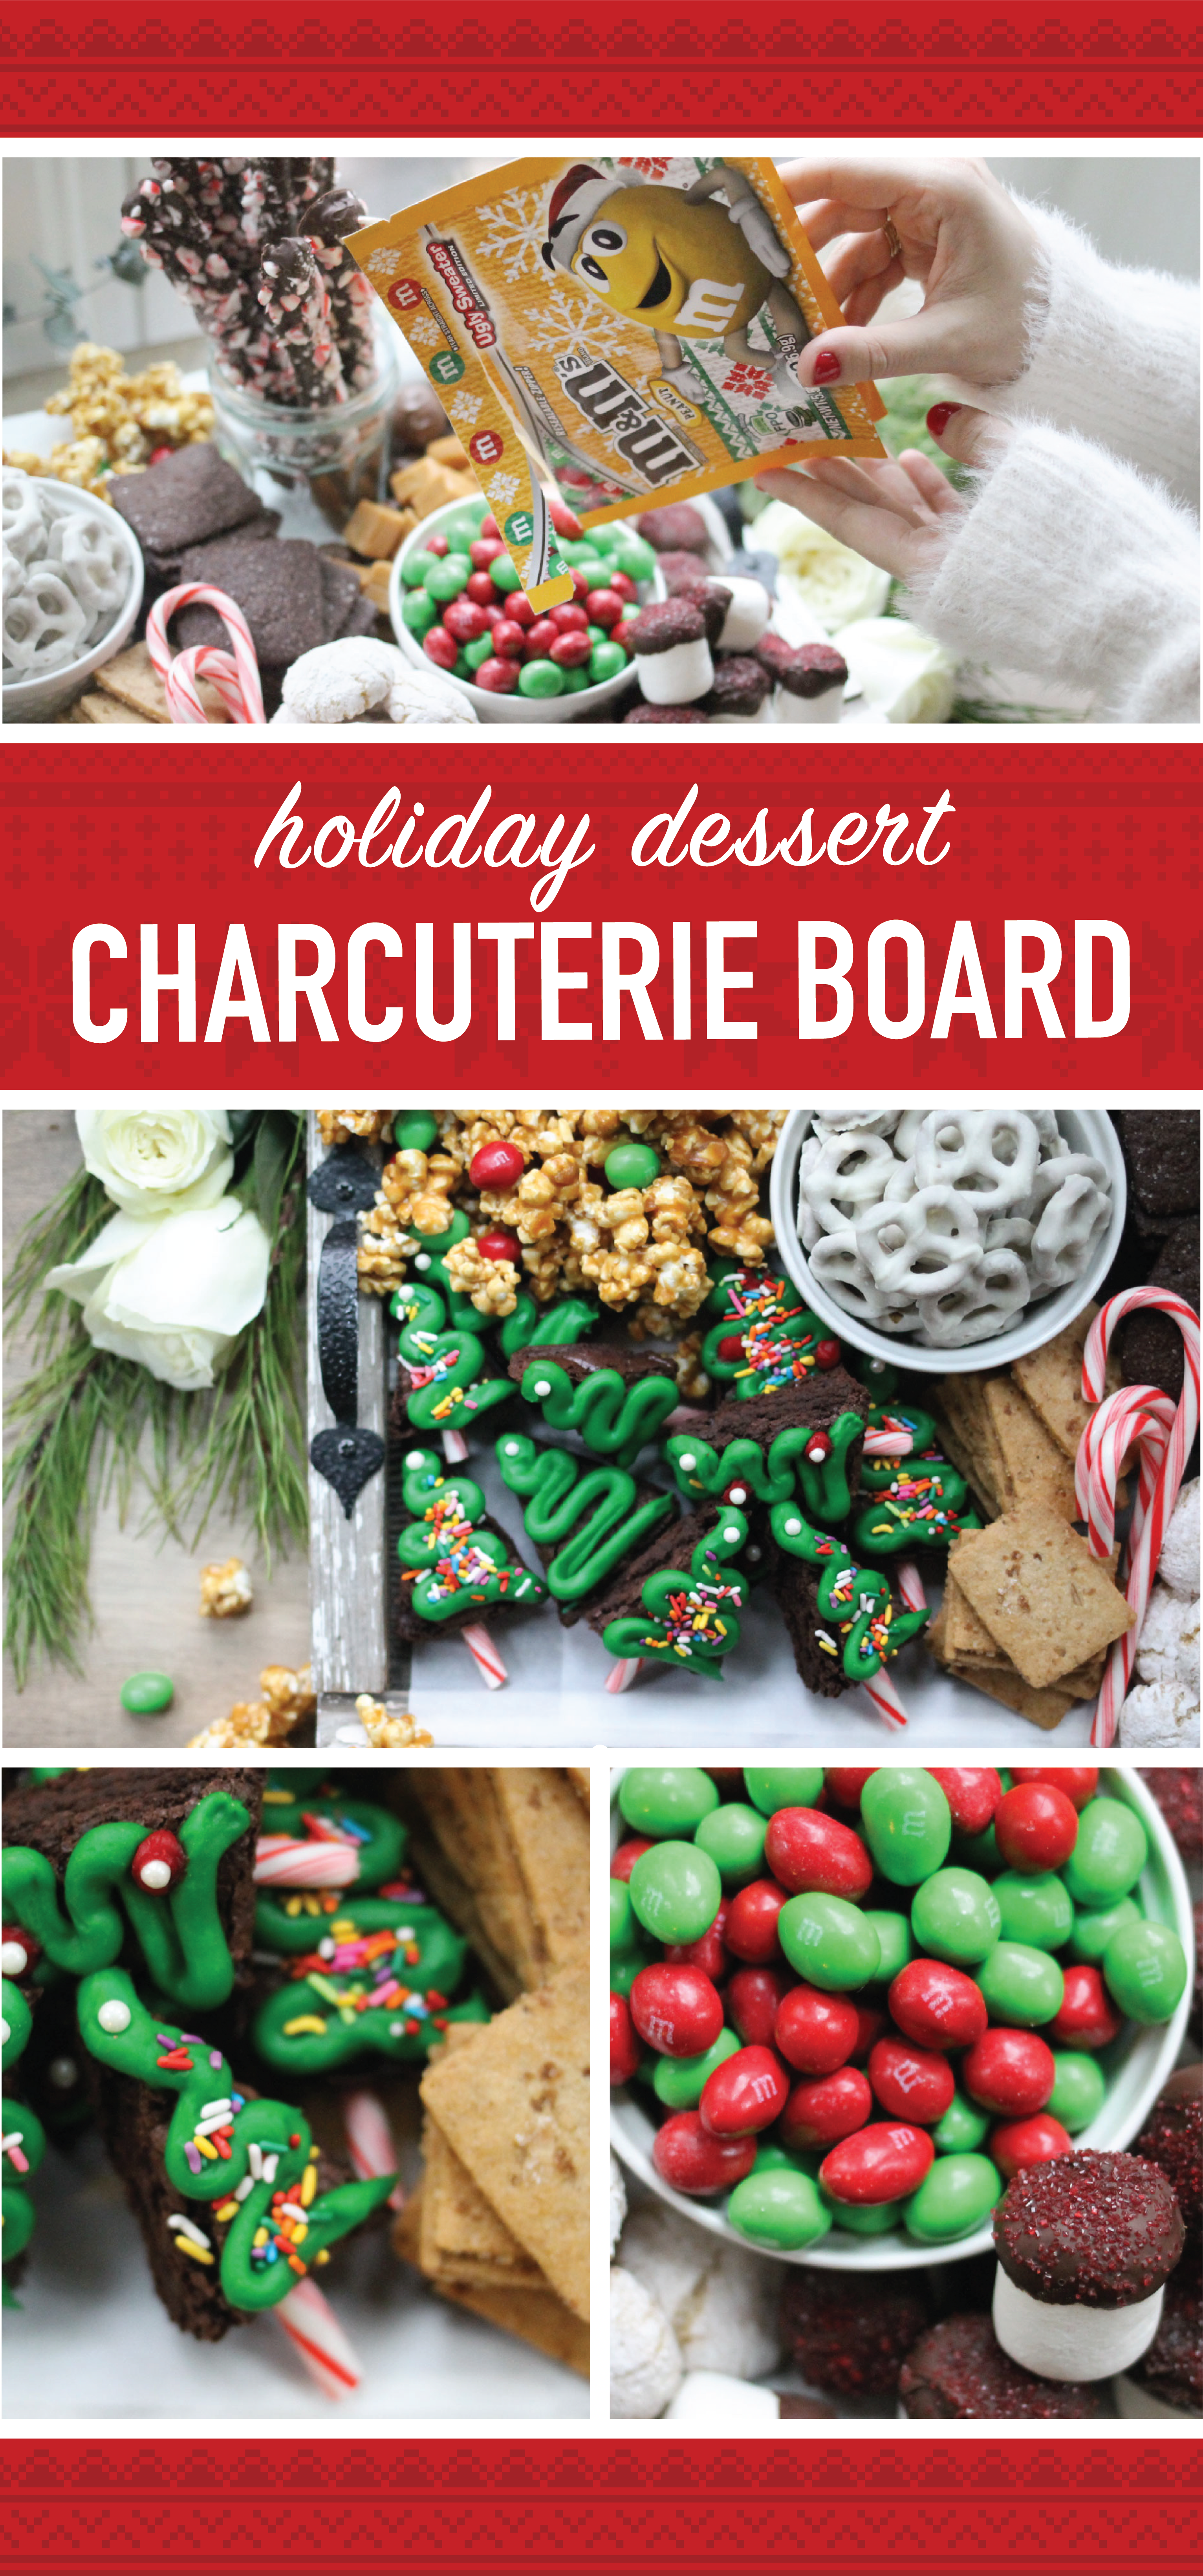 Holiday Dessert Charcuterie Board | Recipe | Ugly Sweater ...